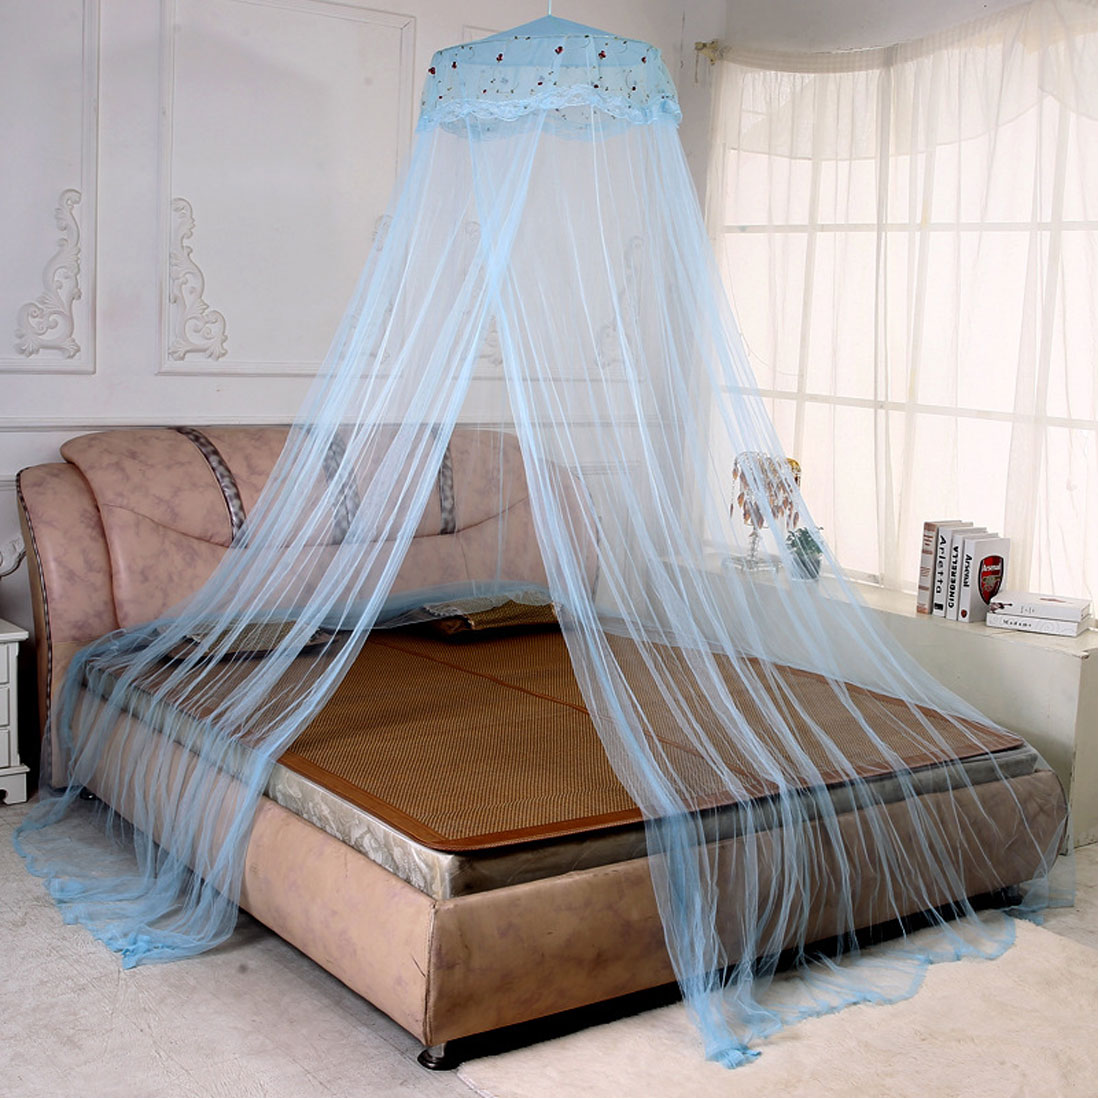 Bedroom Polyester Dome Shaped Bugs Midges Insect Mosquito Net Bed Canopy Blue